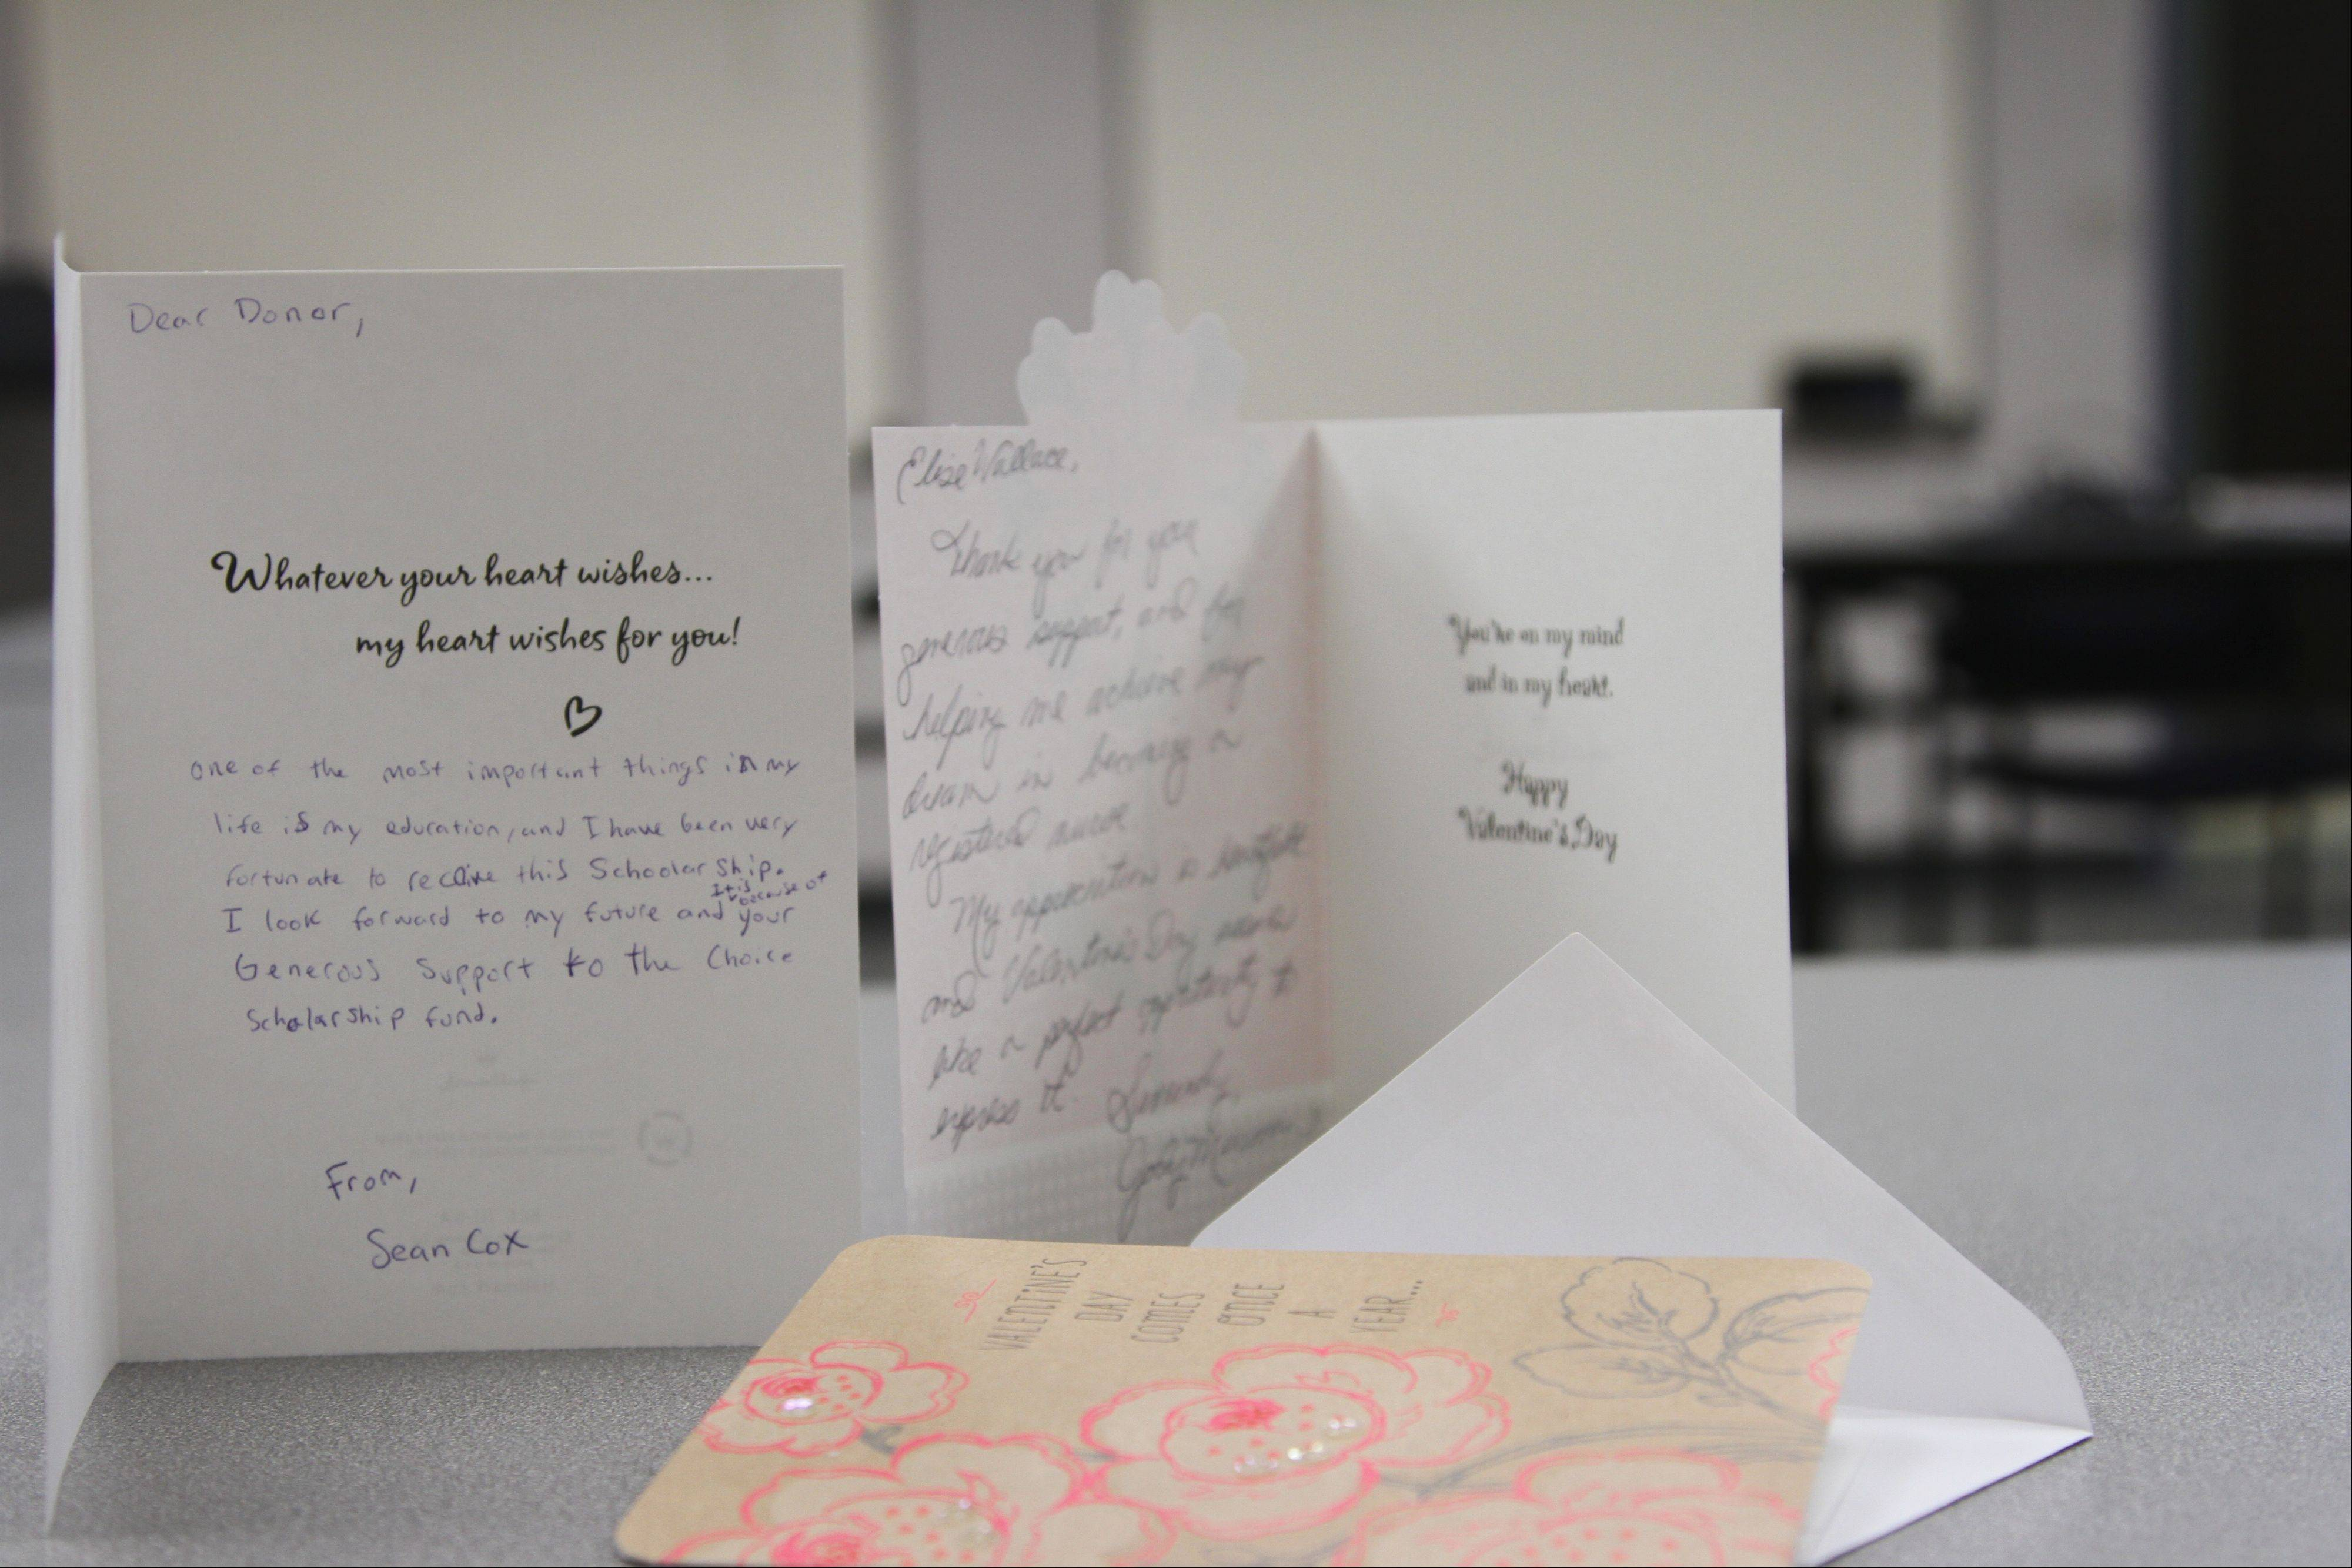 Valentines written by Harper scholarship recipients to donors in honor of Valentine's Day.